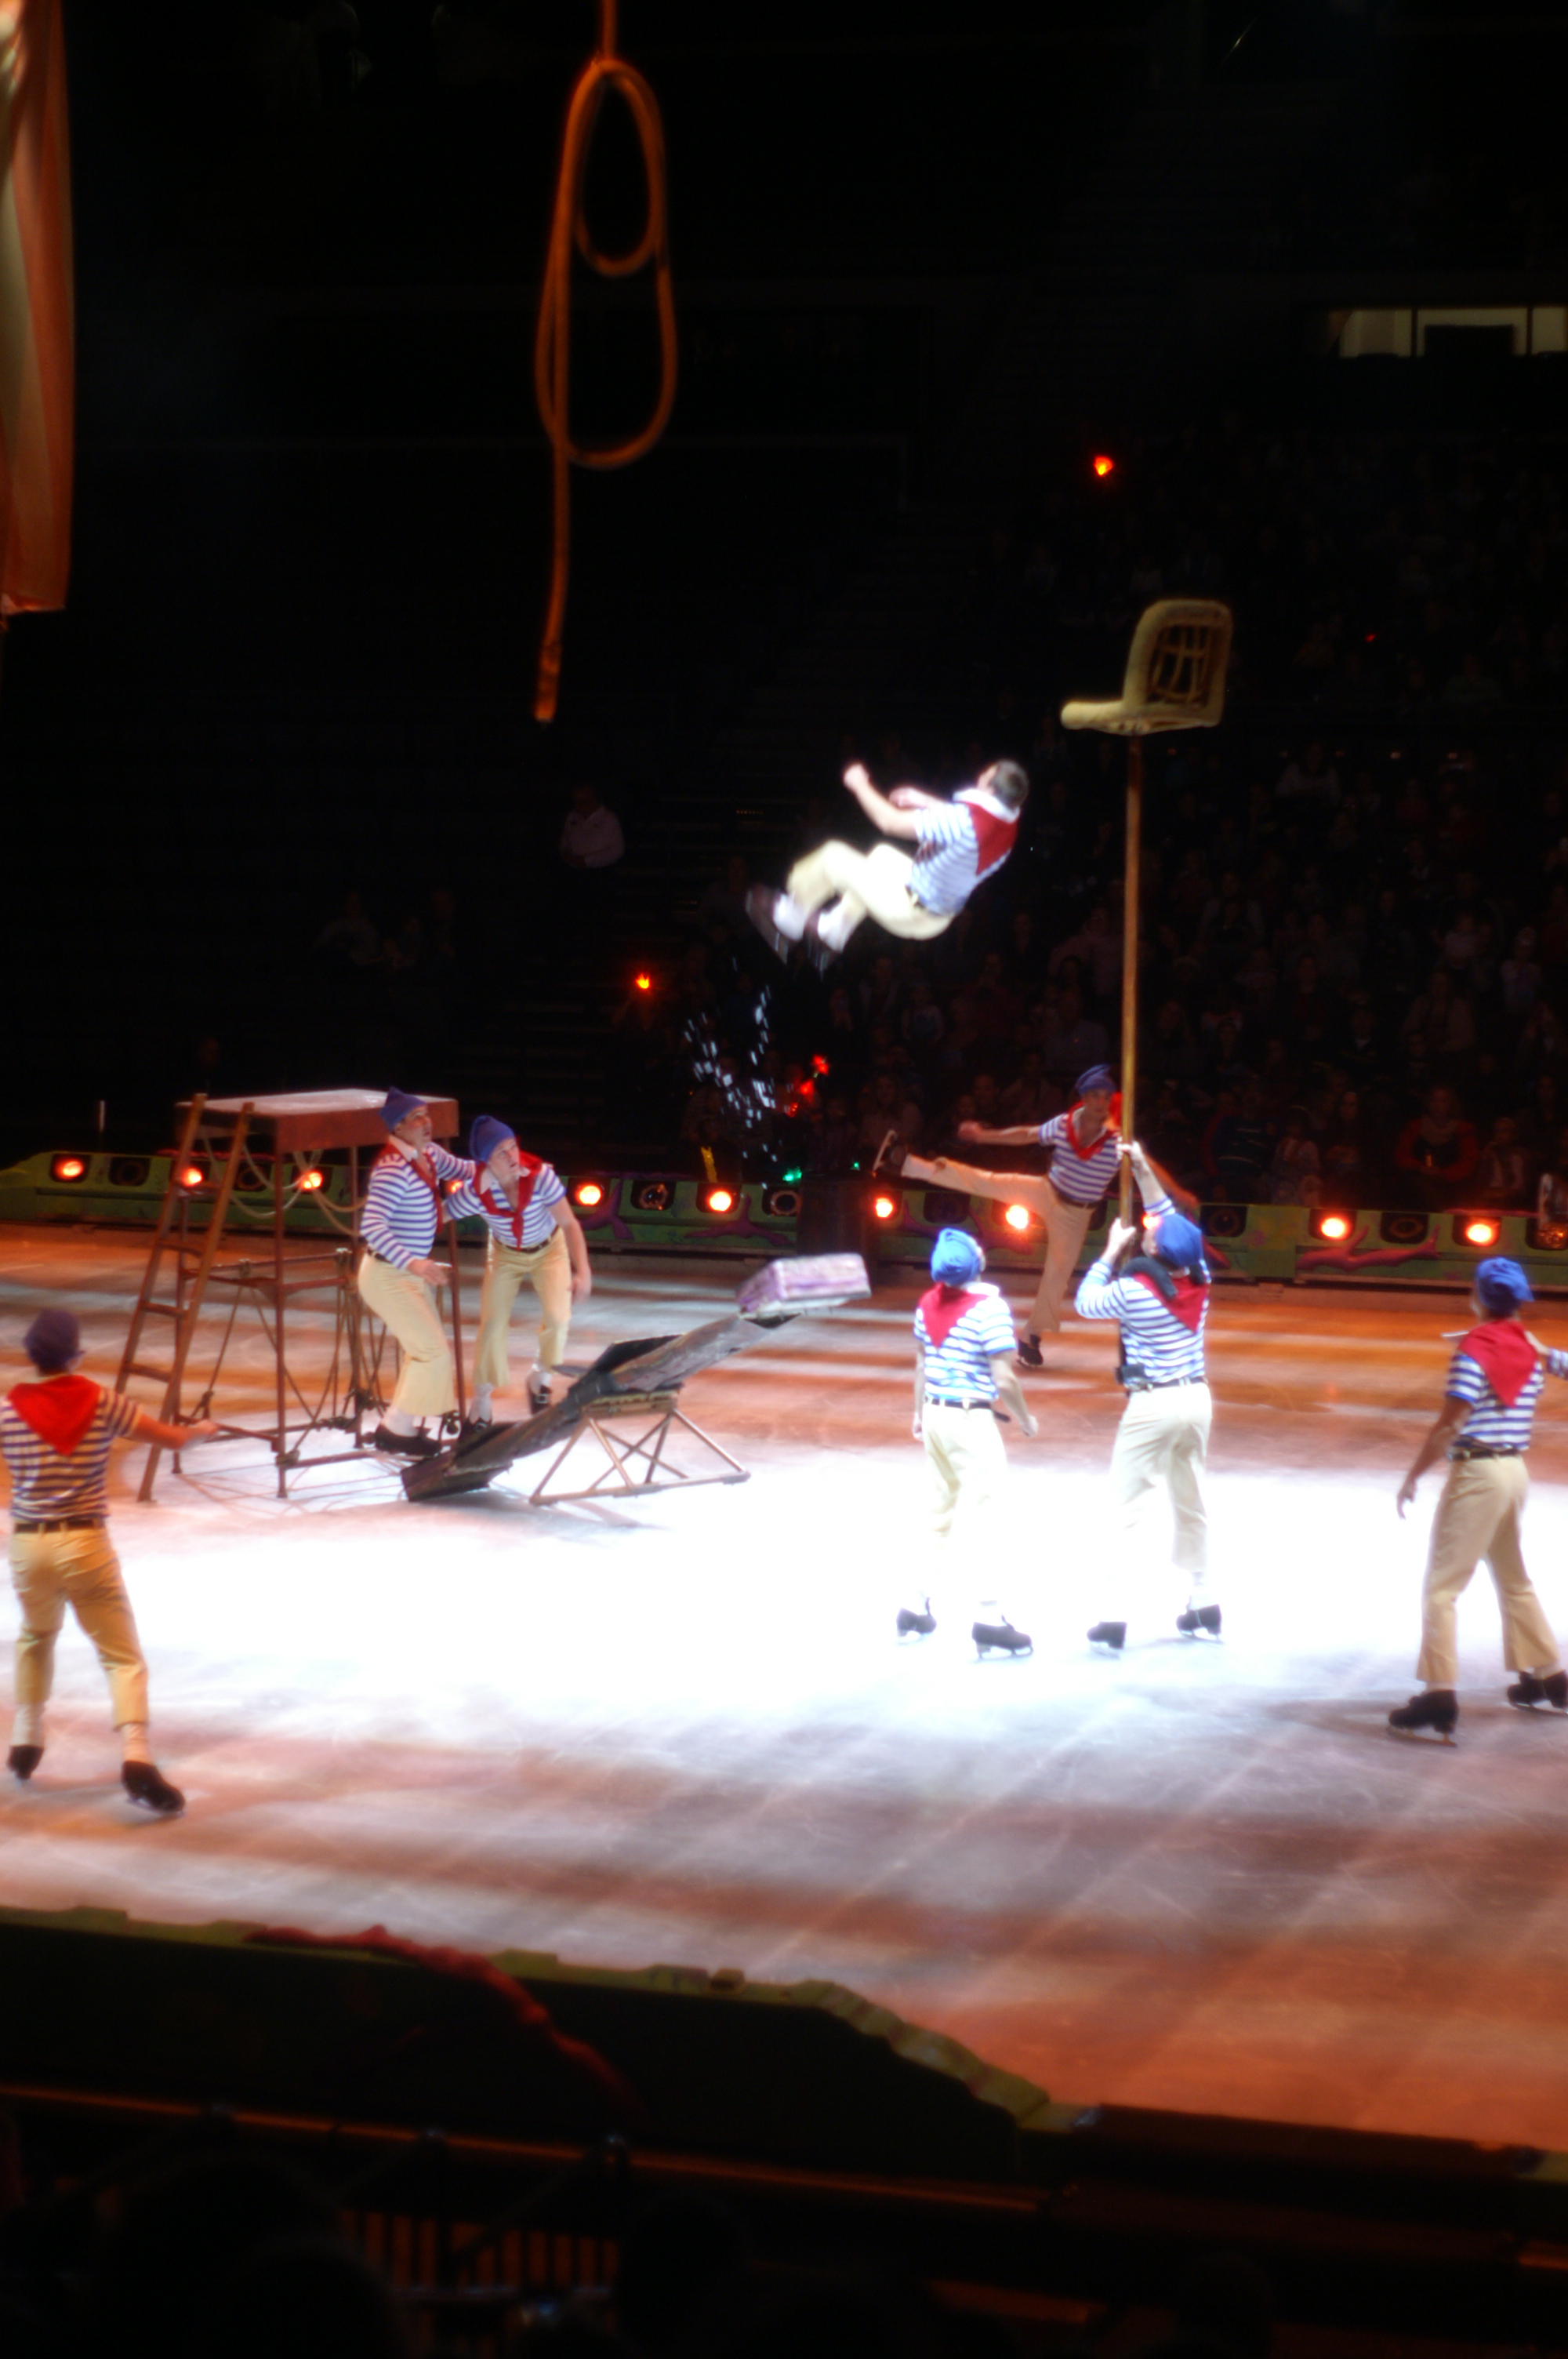 Review: Disney on Ice's Princesses and Heroes was an A+ birthday gift